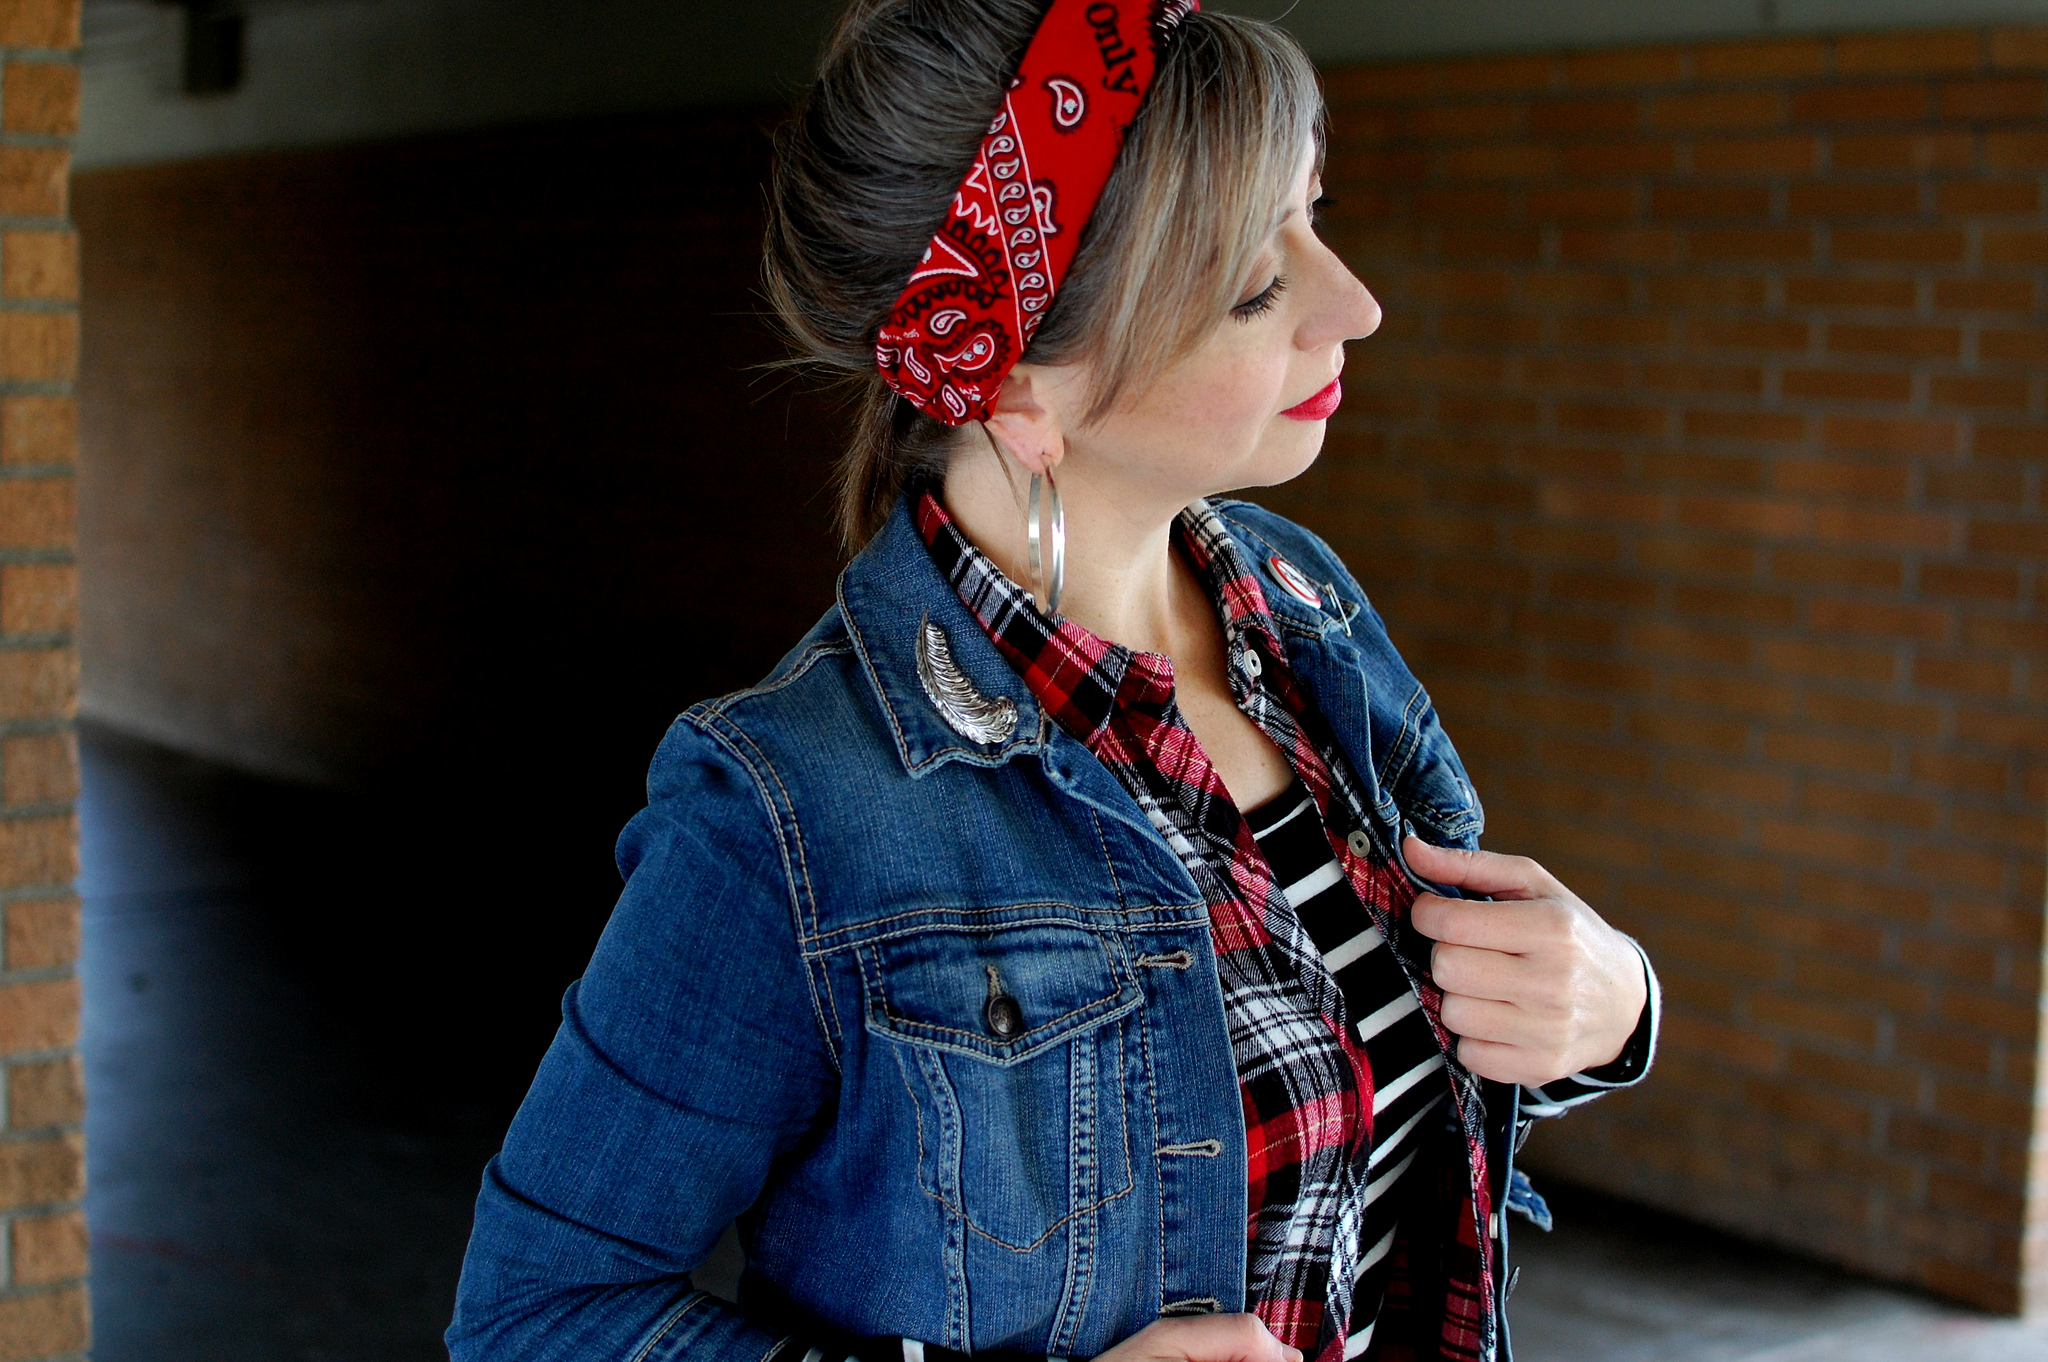 bandana headband french braid dirty hair daily outfit blog whatiwore2day ootd